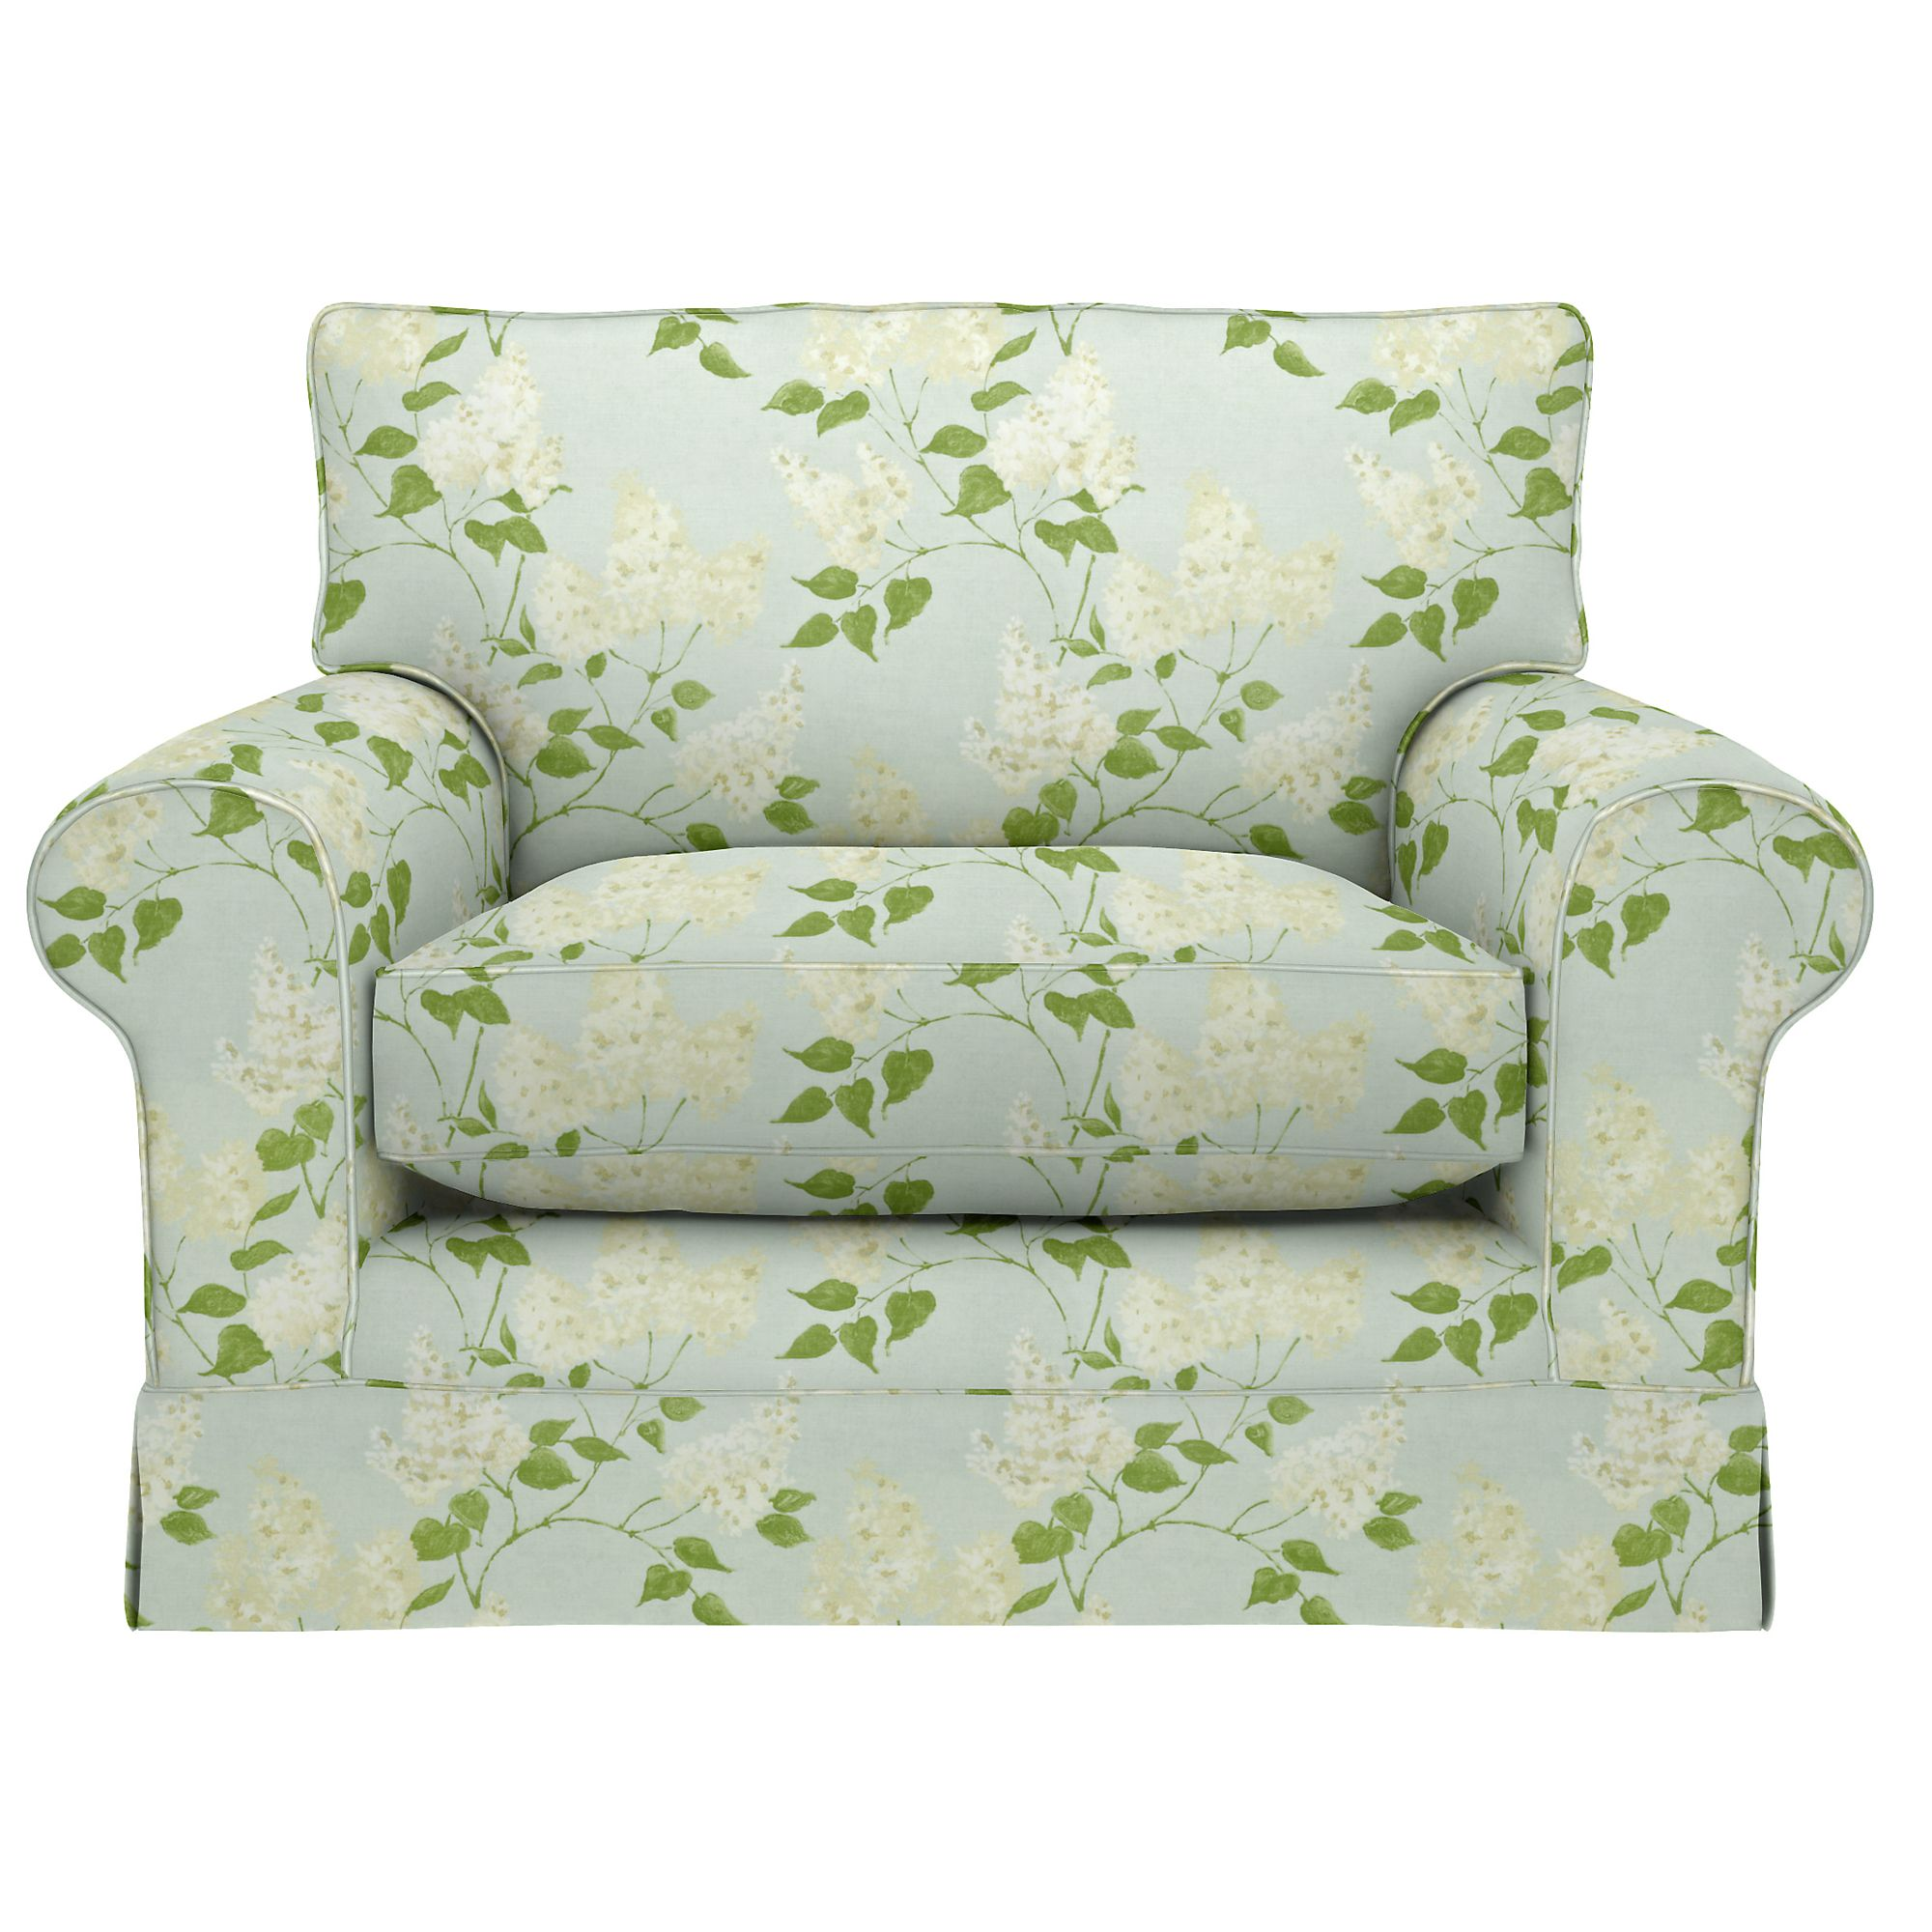 John Lewis Padstow Snuggler, Price Band E, Sanderson Lilacs Duck Egg